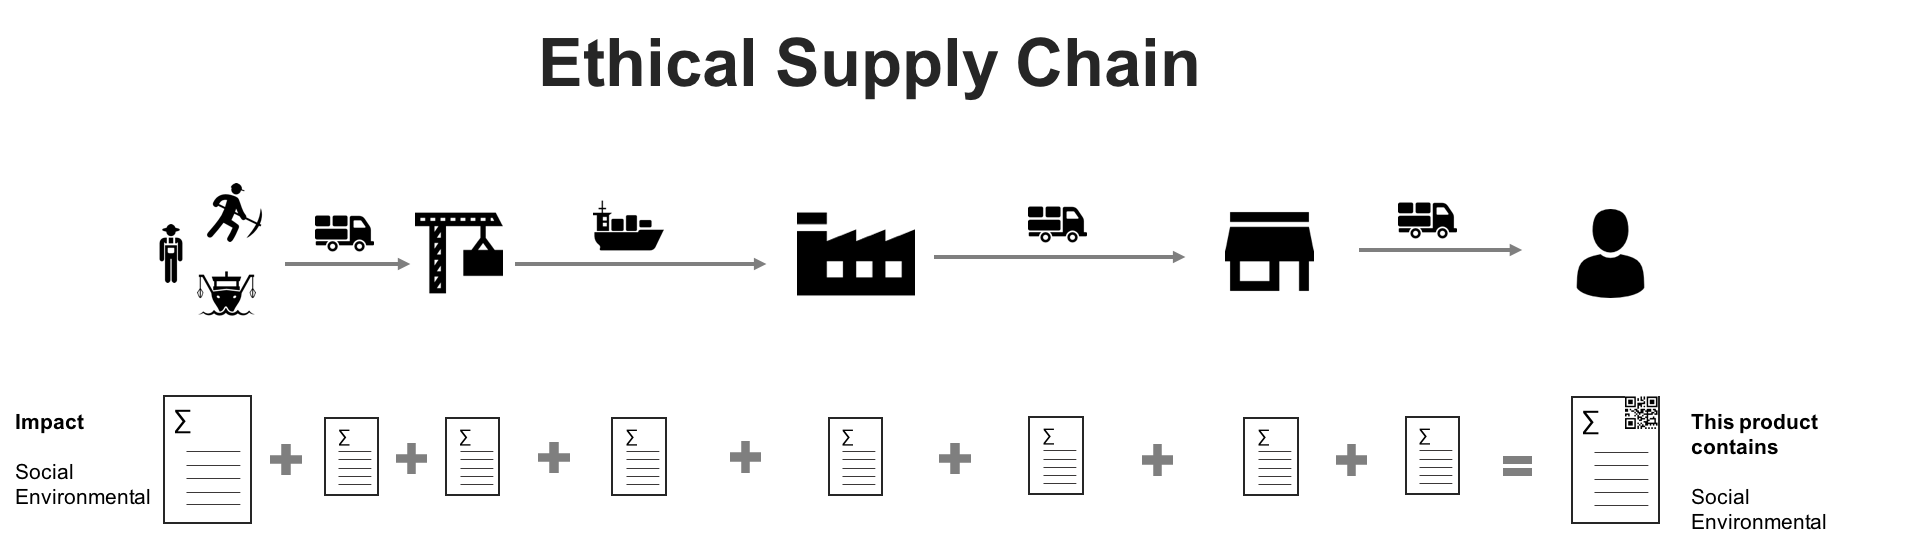 A vision of an ethical supply chain